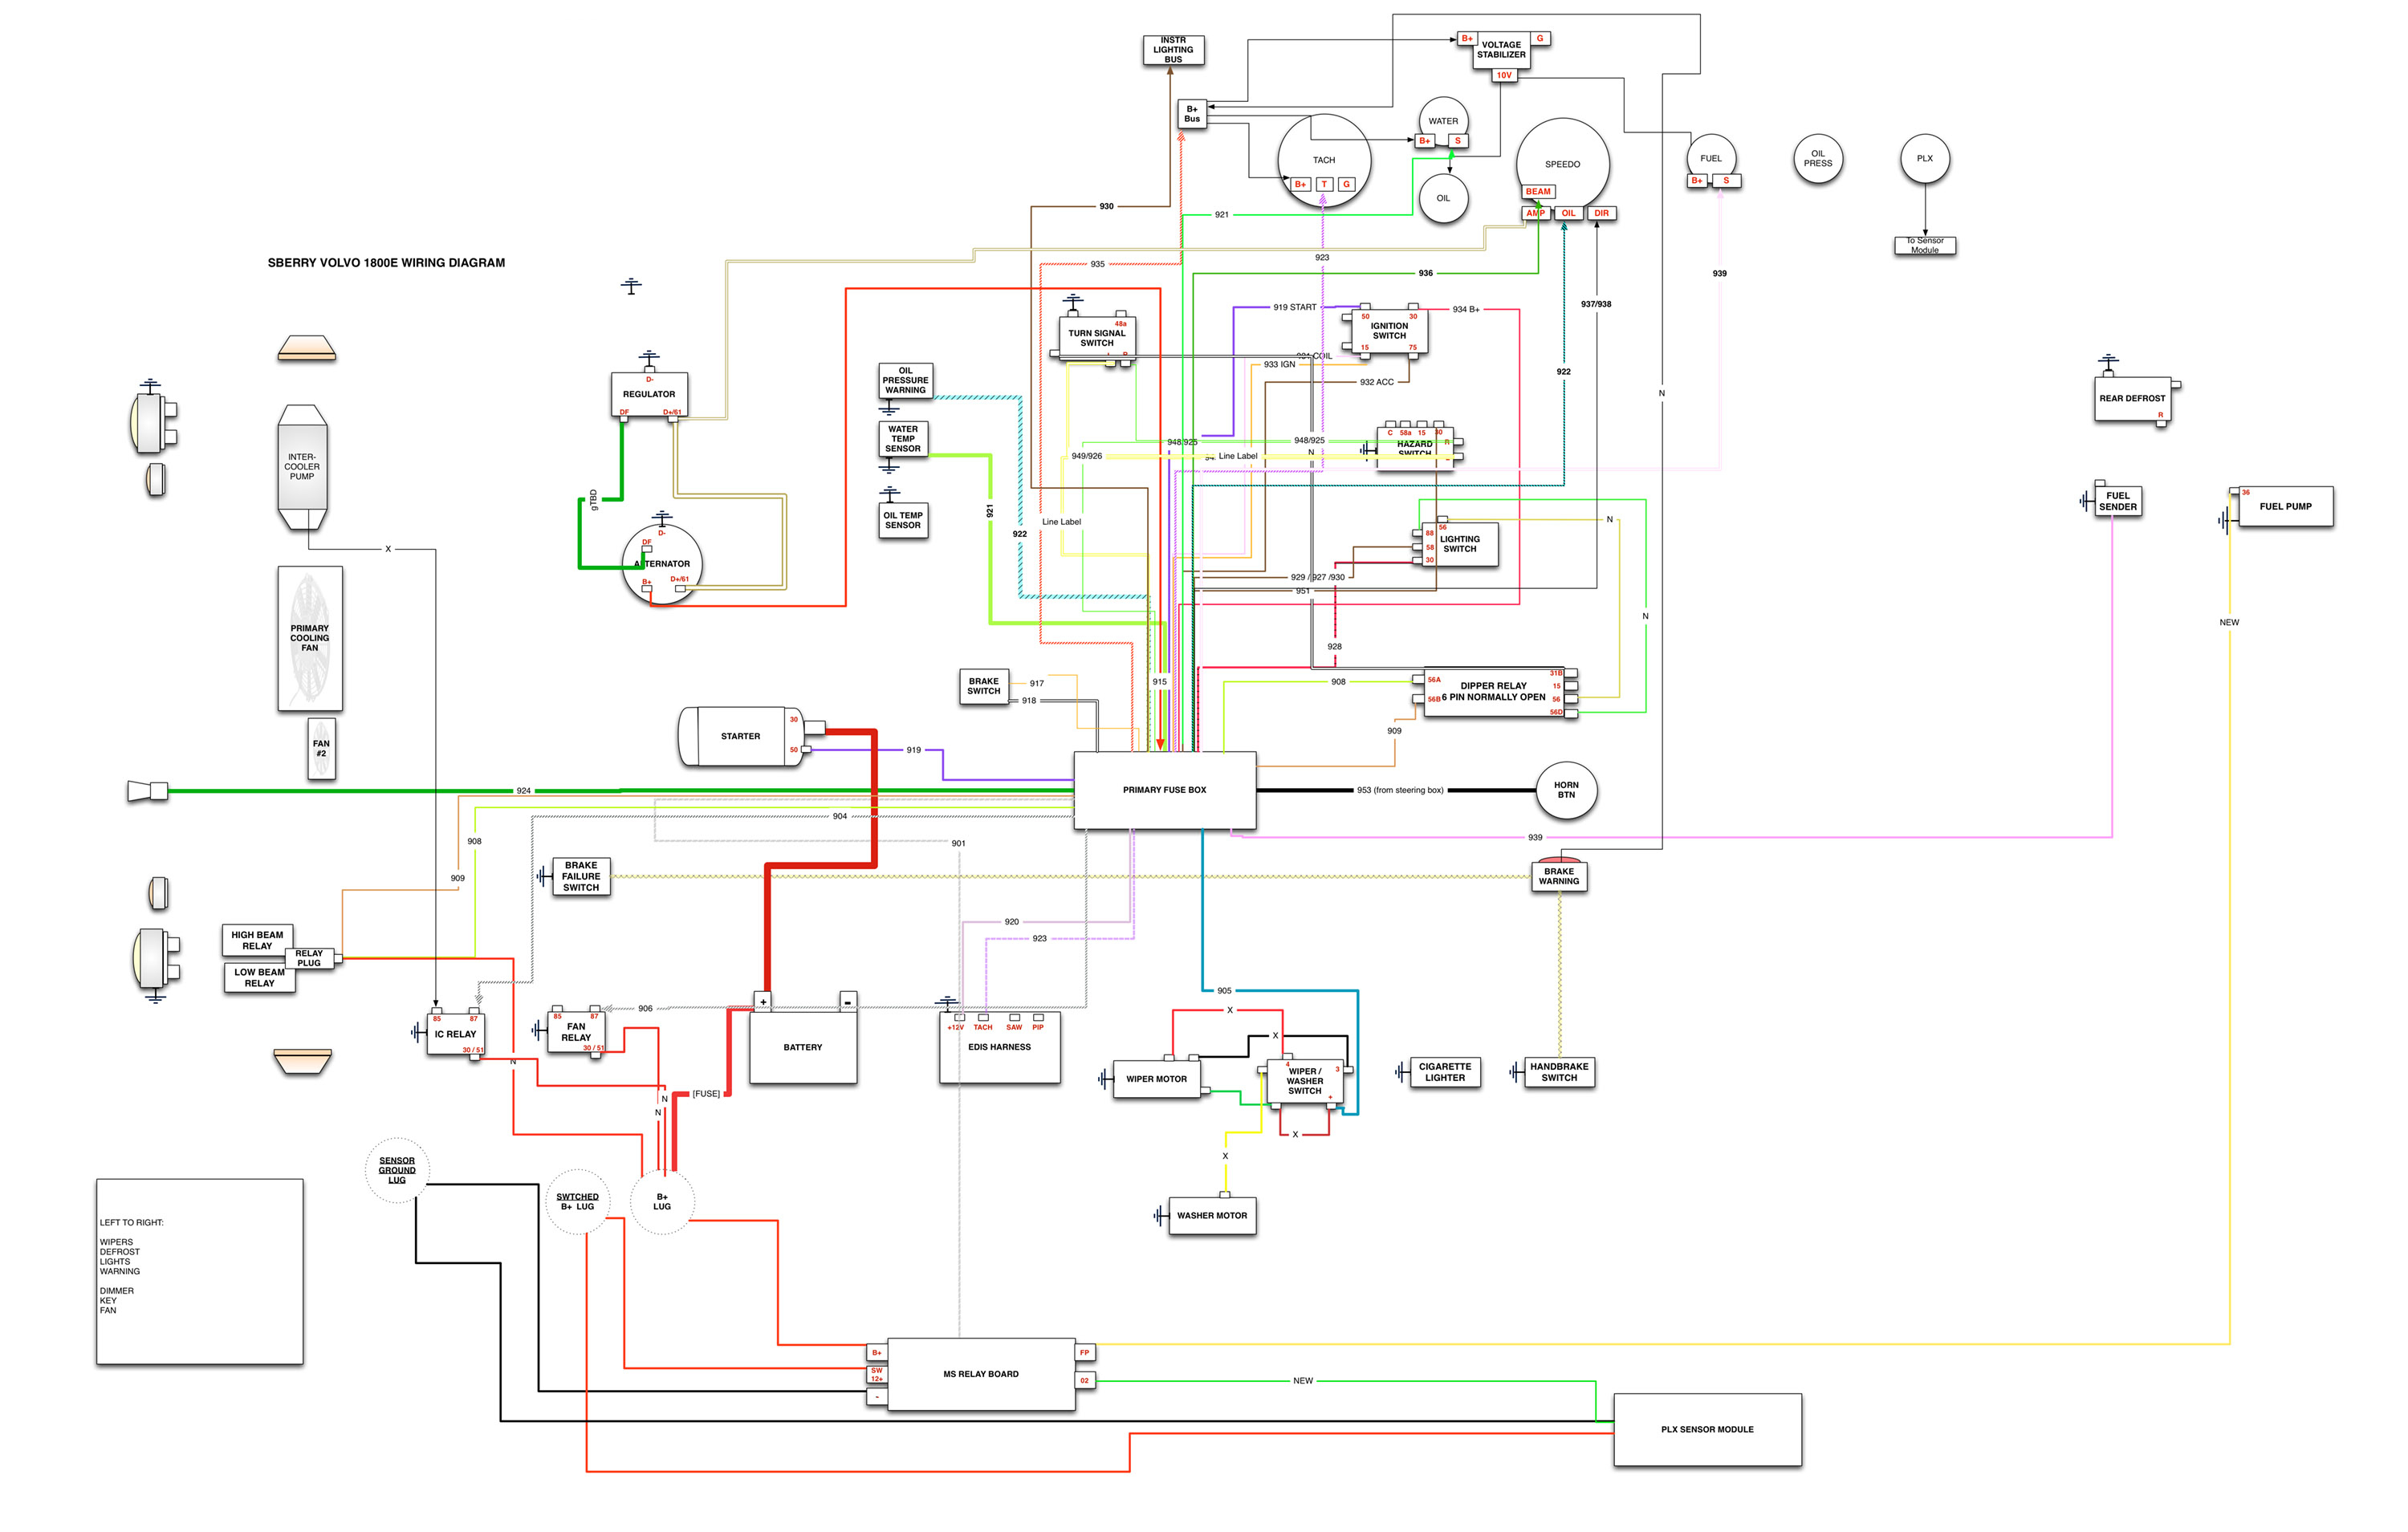 Universal Ignition Switch Wiring Diagram | Wirings Diagram on pole relay wiring diagram, 5 post relay wiring diagram, 8 post relay wiring diagram, 6 post relay wiring diagram,